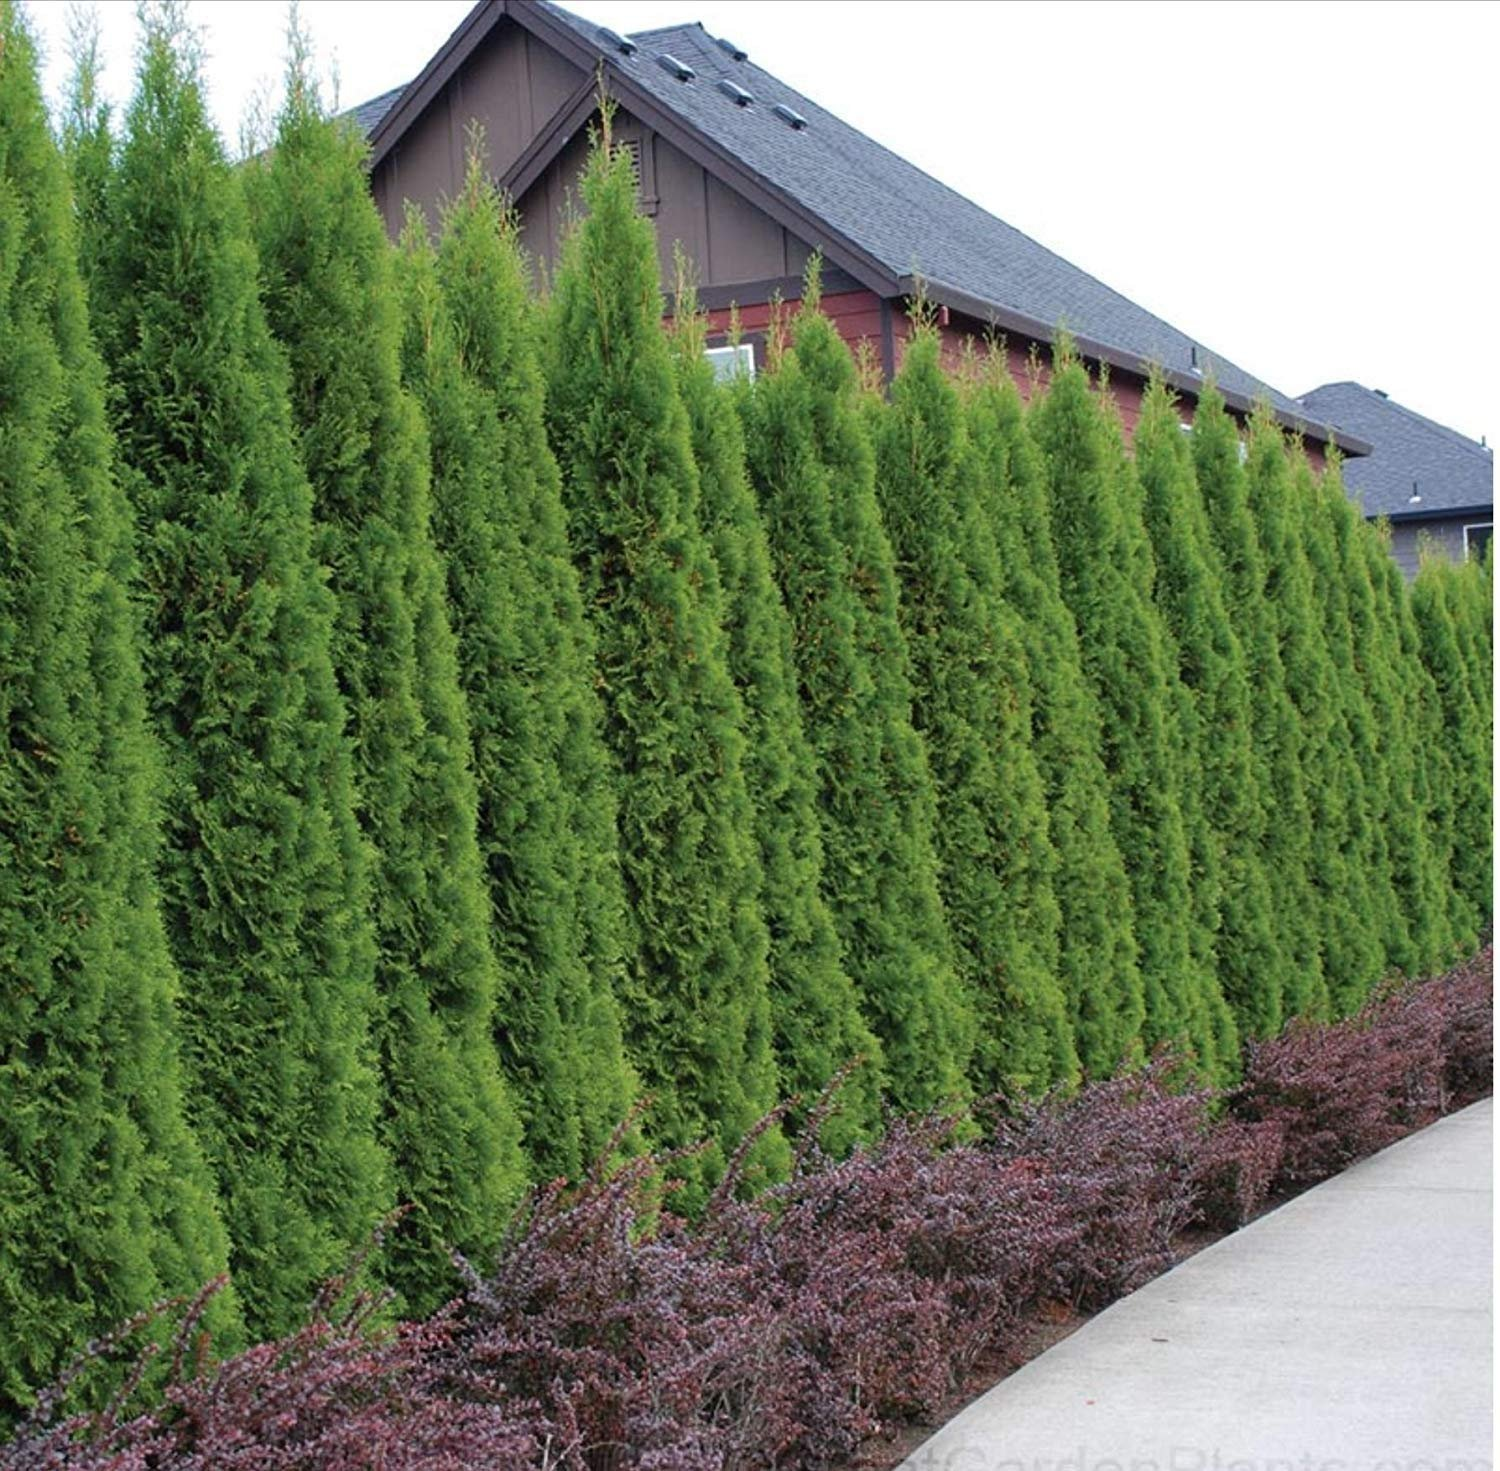 Thuja Emerald Green Arborvitae - 60 Live Plants - 2'' Pot Size - Evergreen Privacy Tree by Florida Foliage (Image #6)